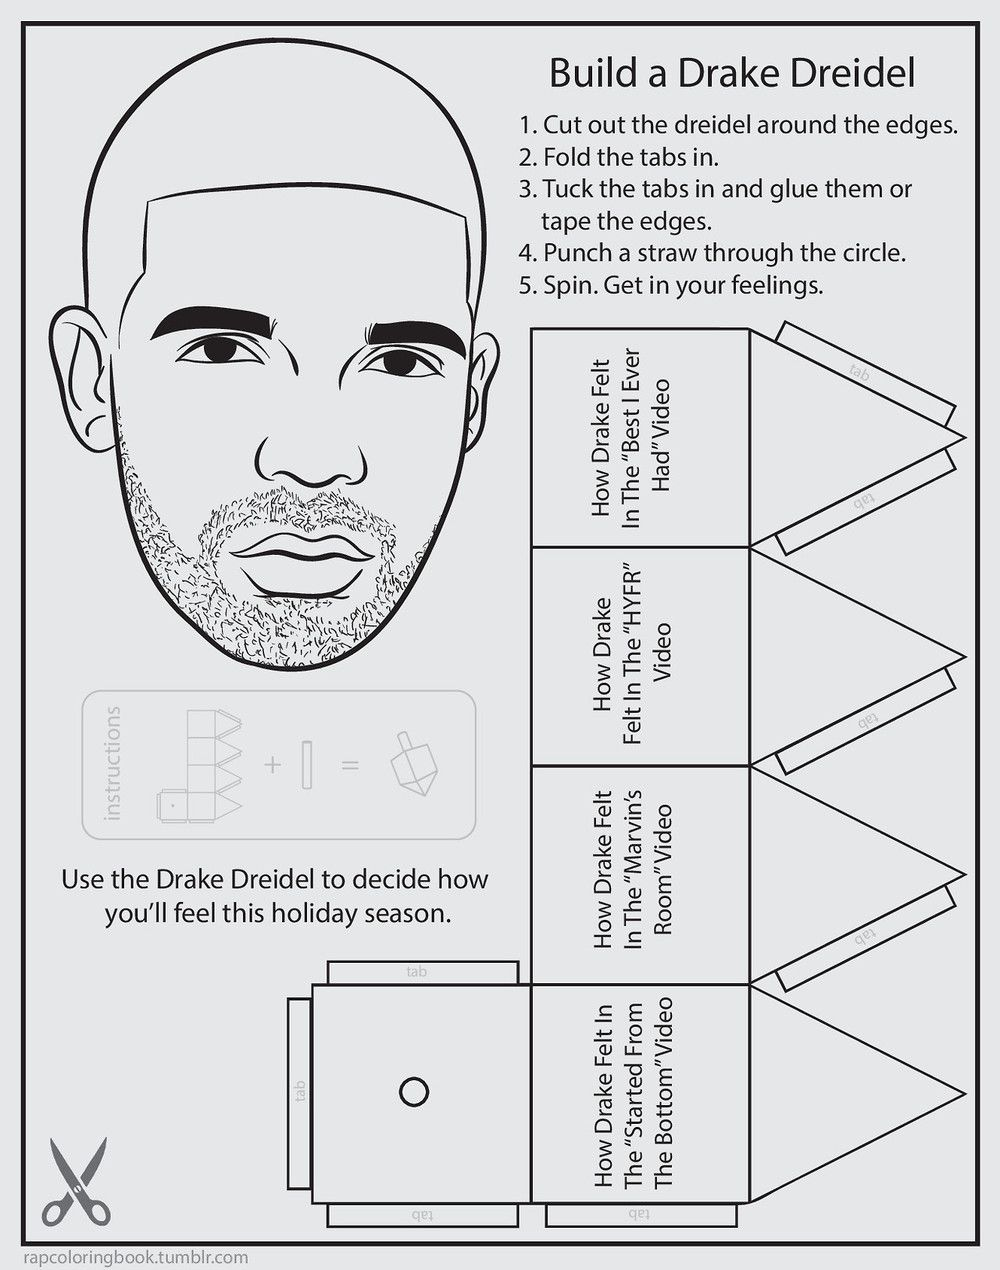 Drake Dreidel From Bun Bs Rap Coloring And Activity Book